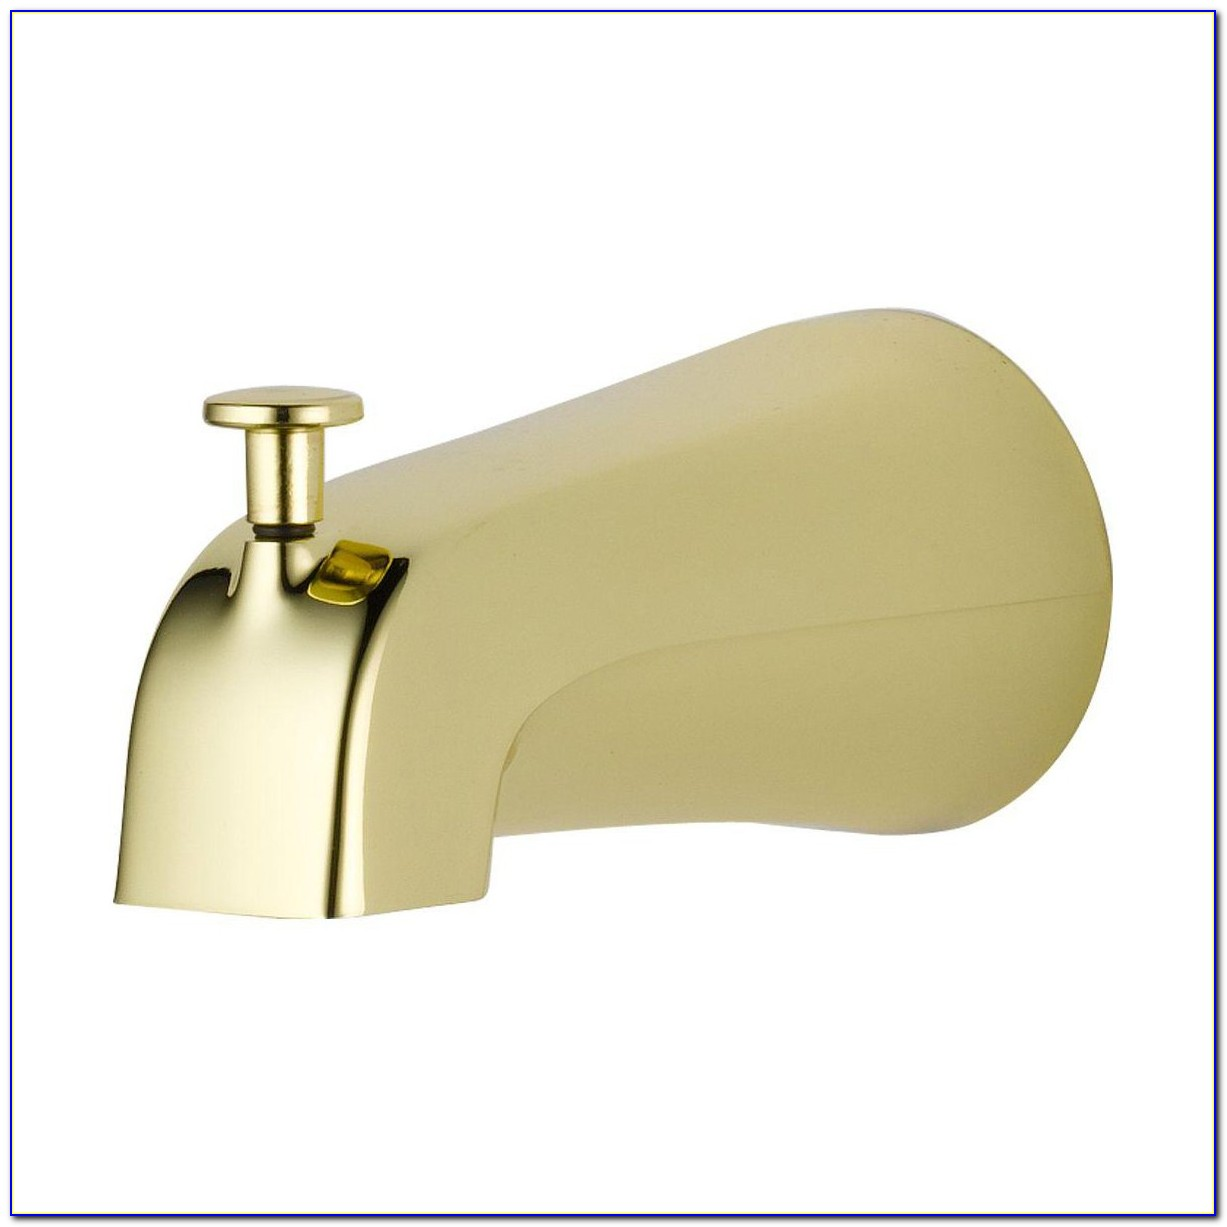 Bathtub Faucet With Handheld Diverter